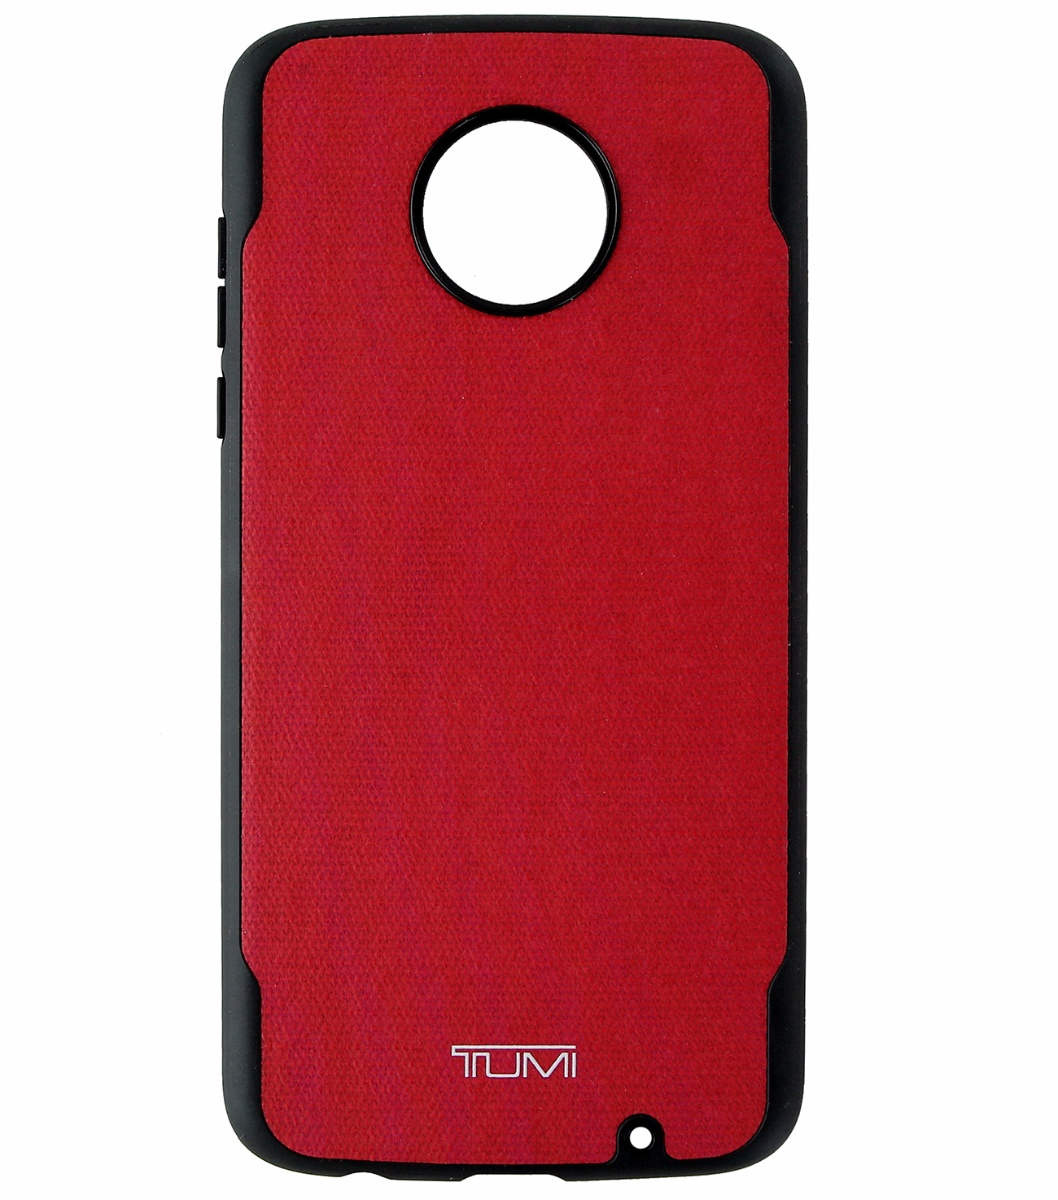 Tumi Coated Canvas Co-Mold Protective Case Cover for Motorola Moto Z2 Play Red